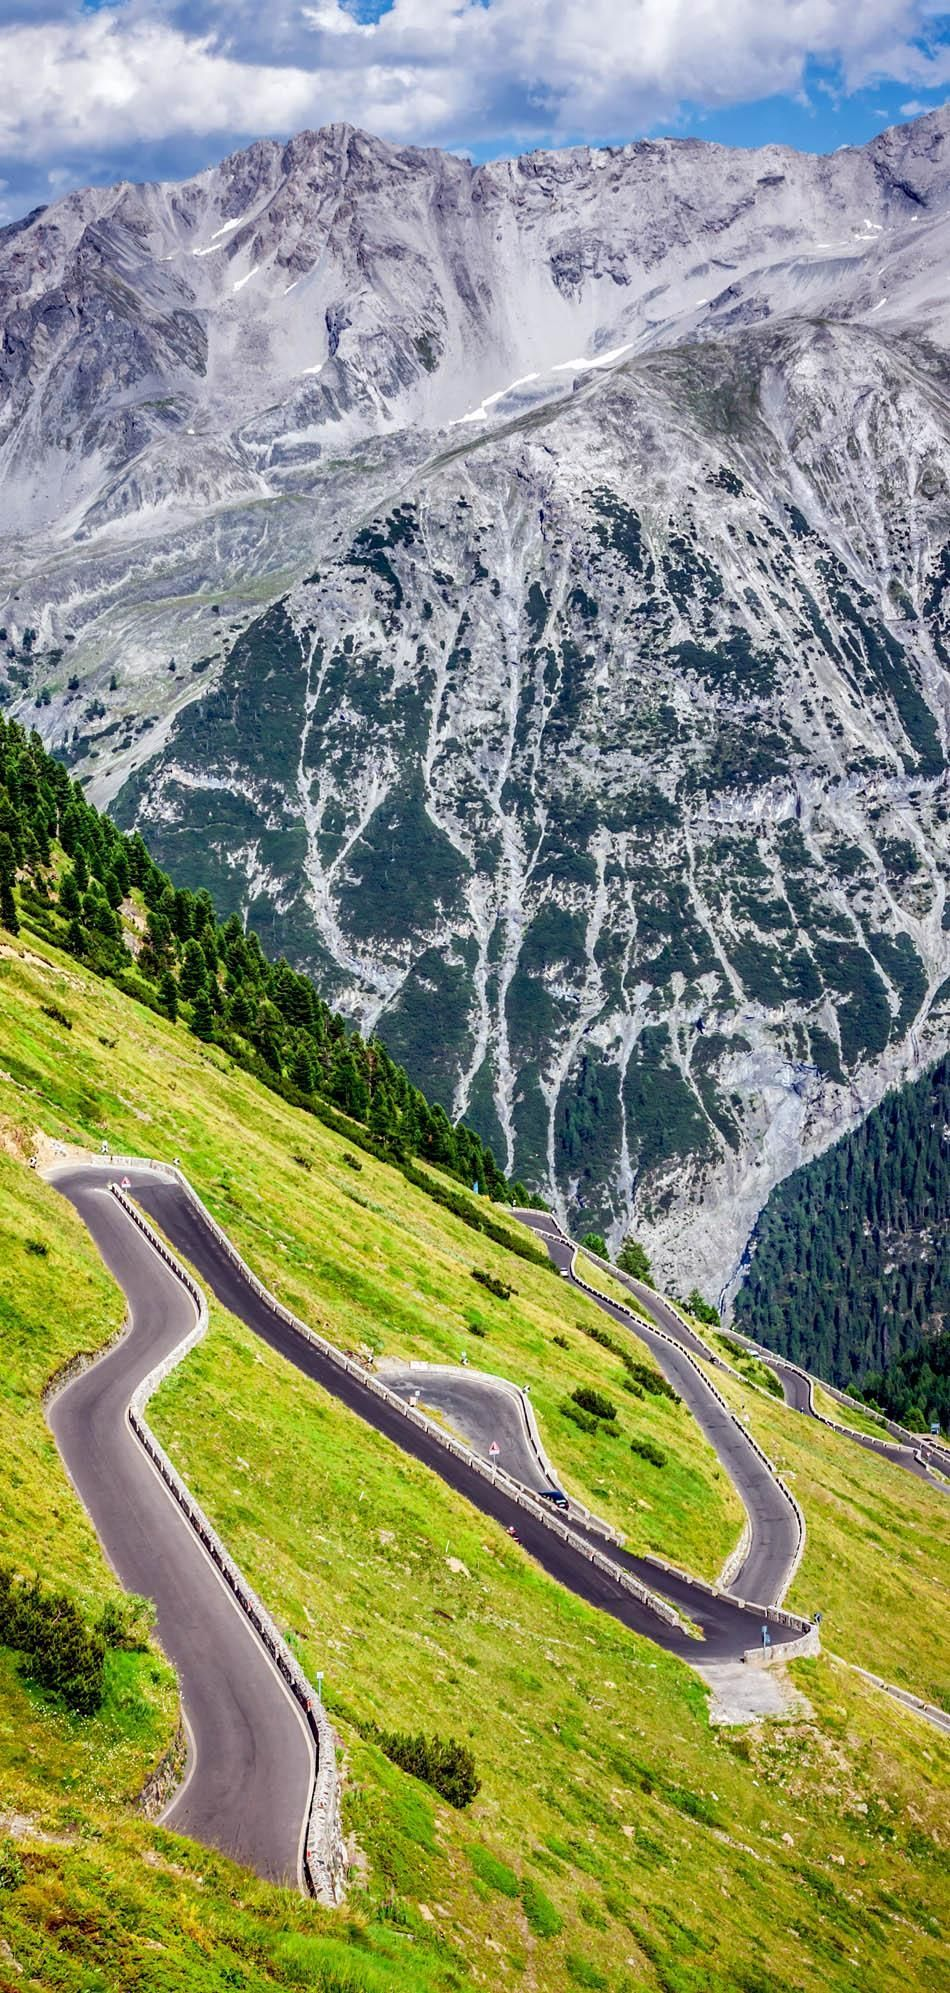 Cinematic Road Passo Dello Stelvio, Italia | 23 Roads you Have to Drive in Your Lifetime